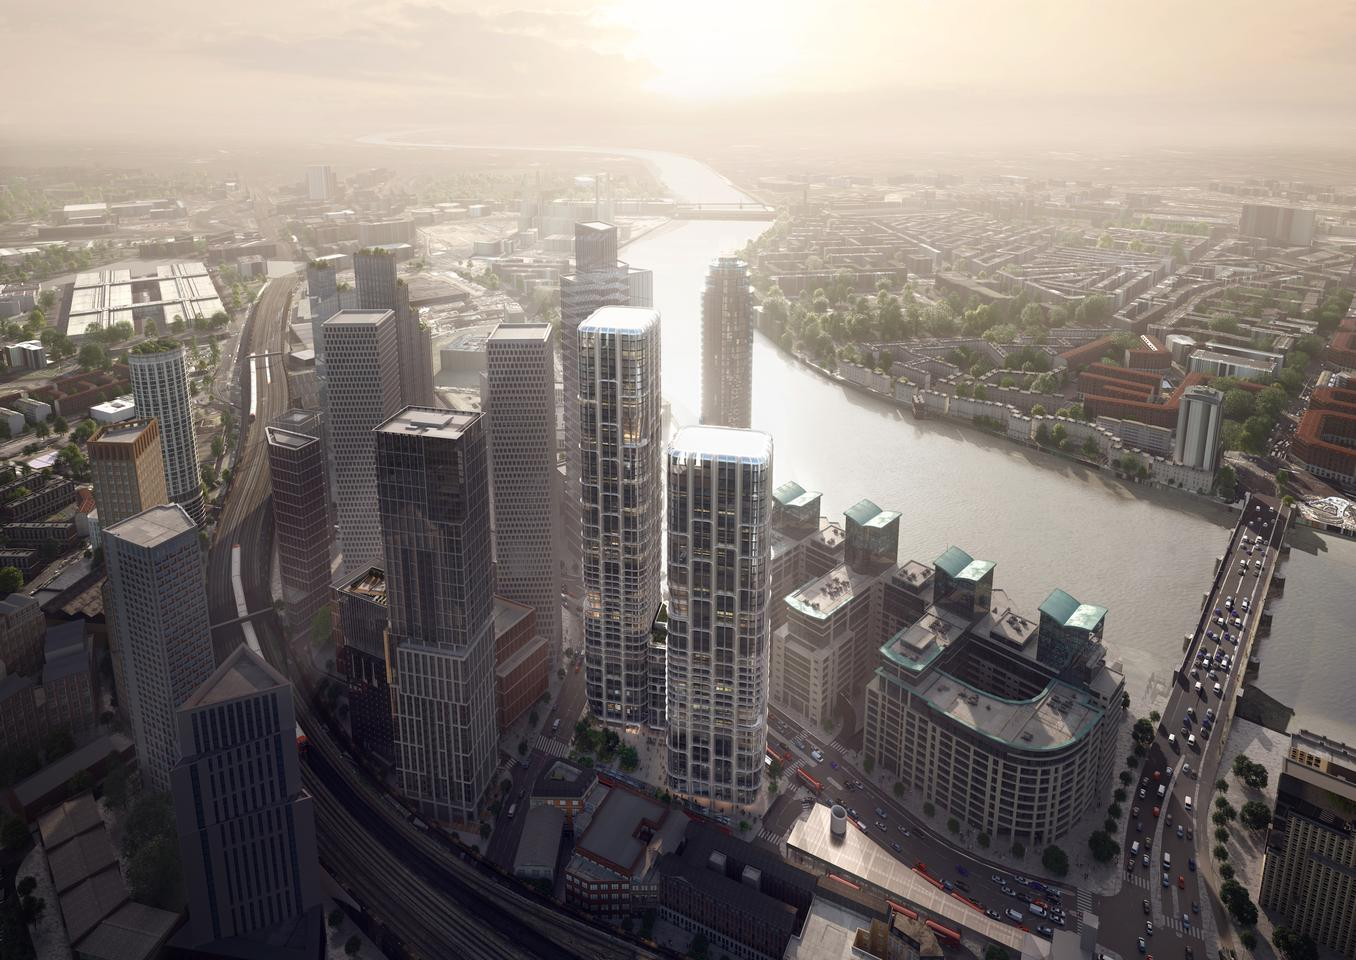 Vauxhall Cross Island will include two eye-catching skyscrapers that are defined by an interesting grid-like facade and joined by a podium building